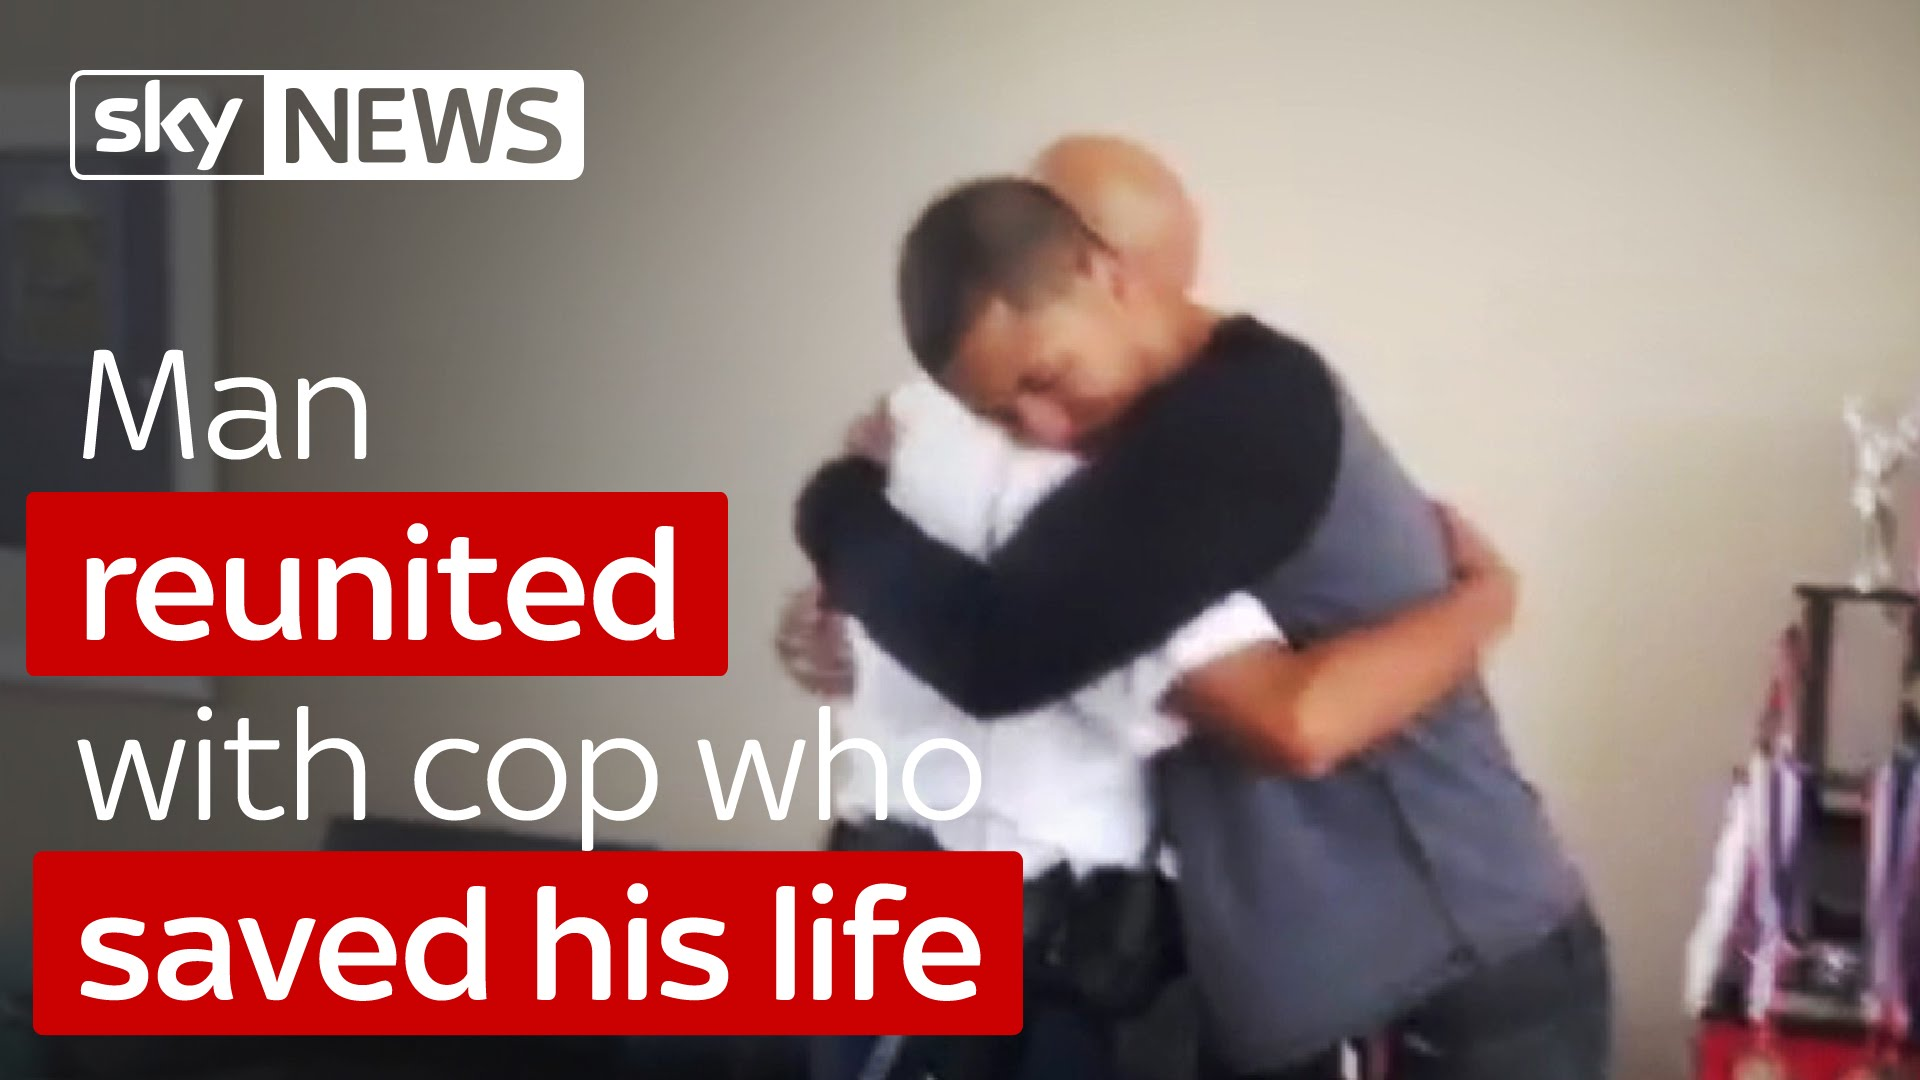 Man Reunited With Cop Who Saved His Life 2